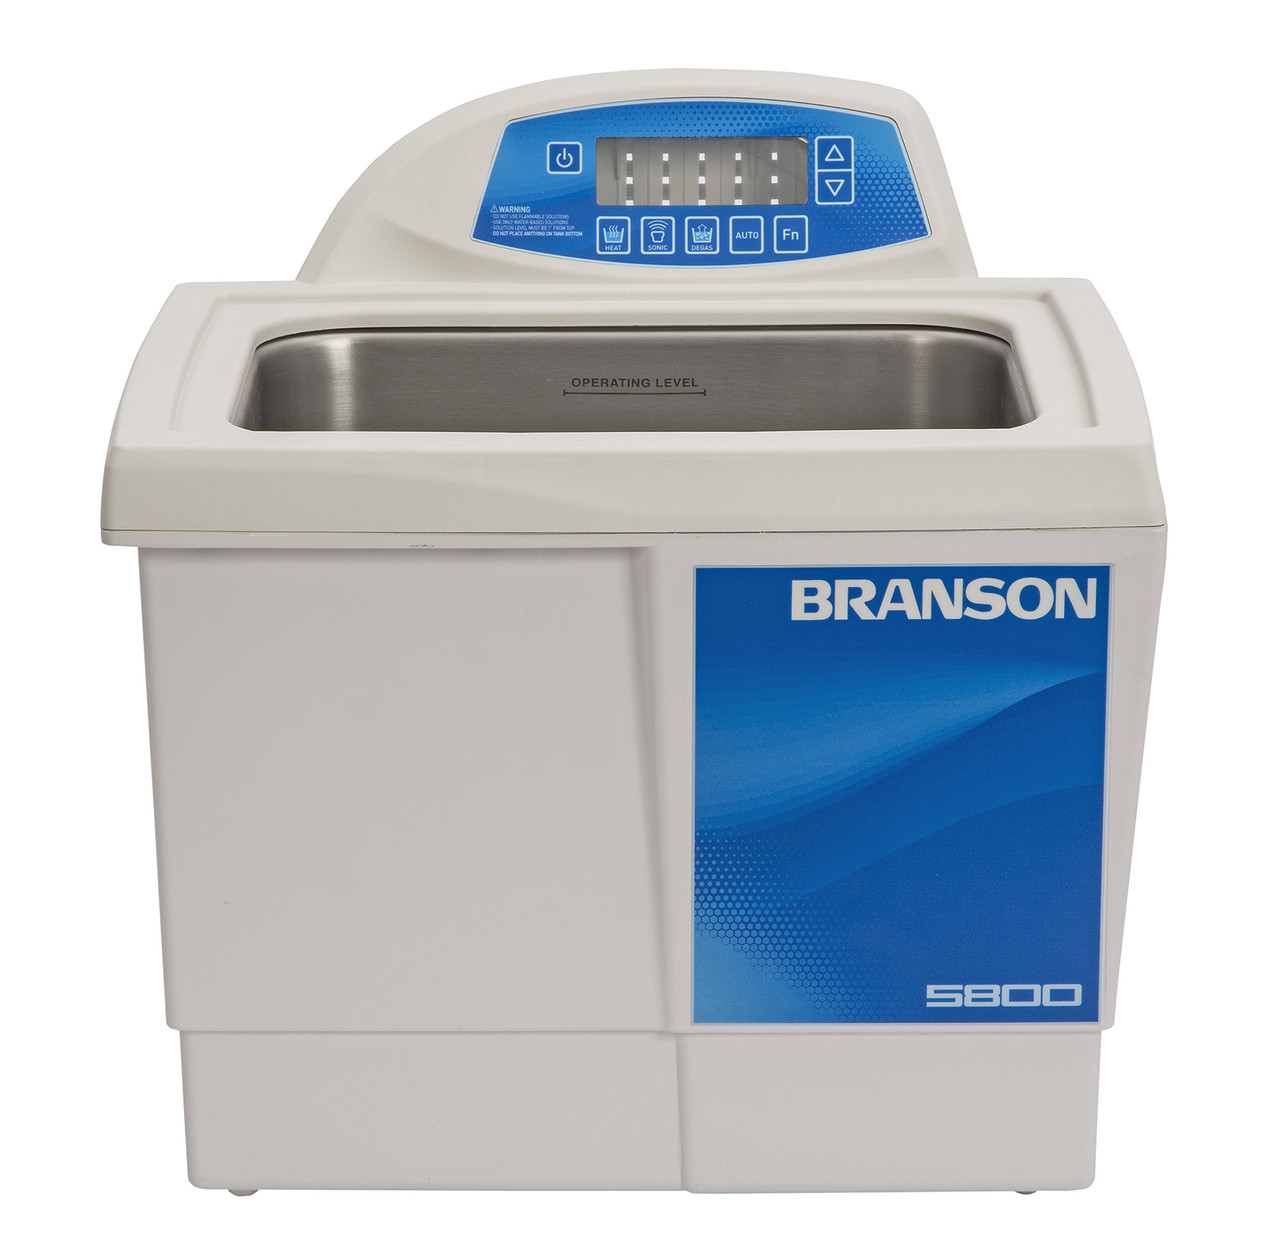 Branson CPX5800H Ultrasonic Cleaner